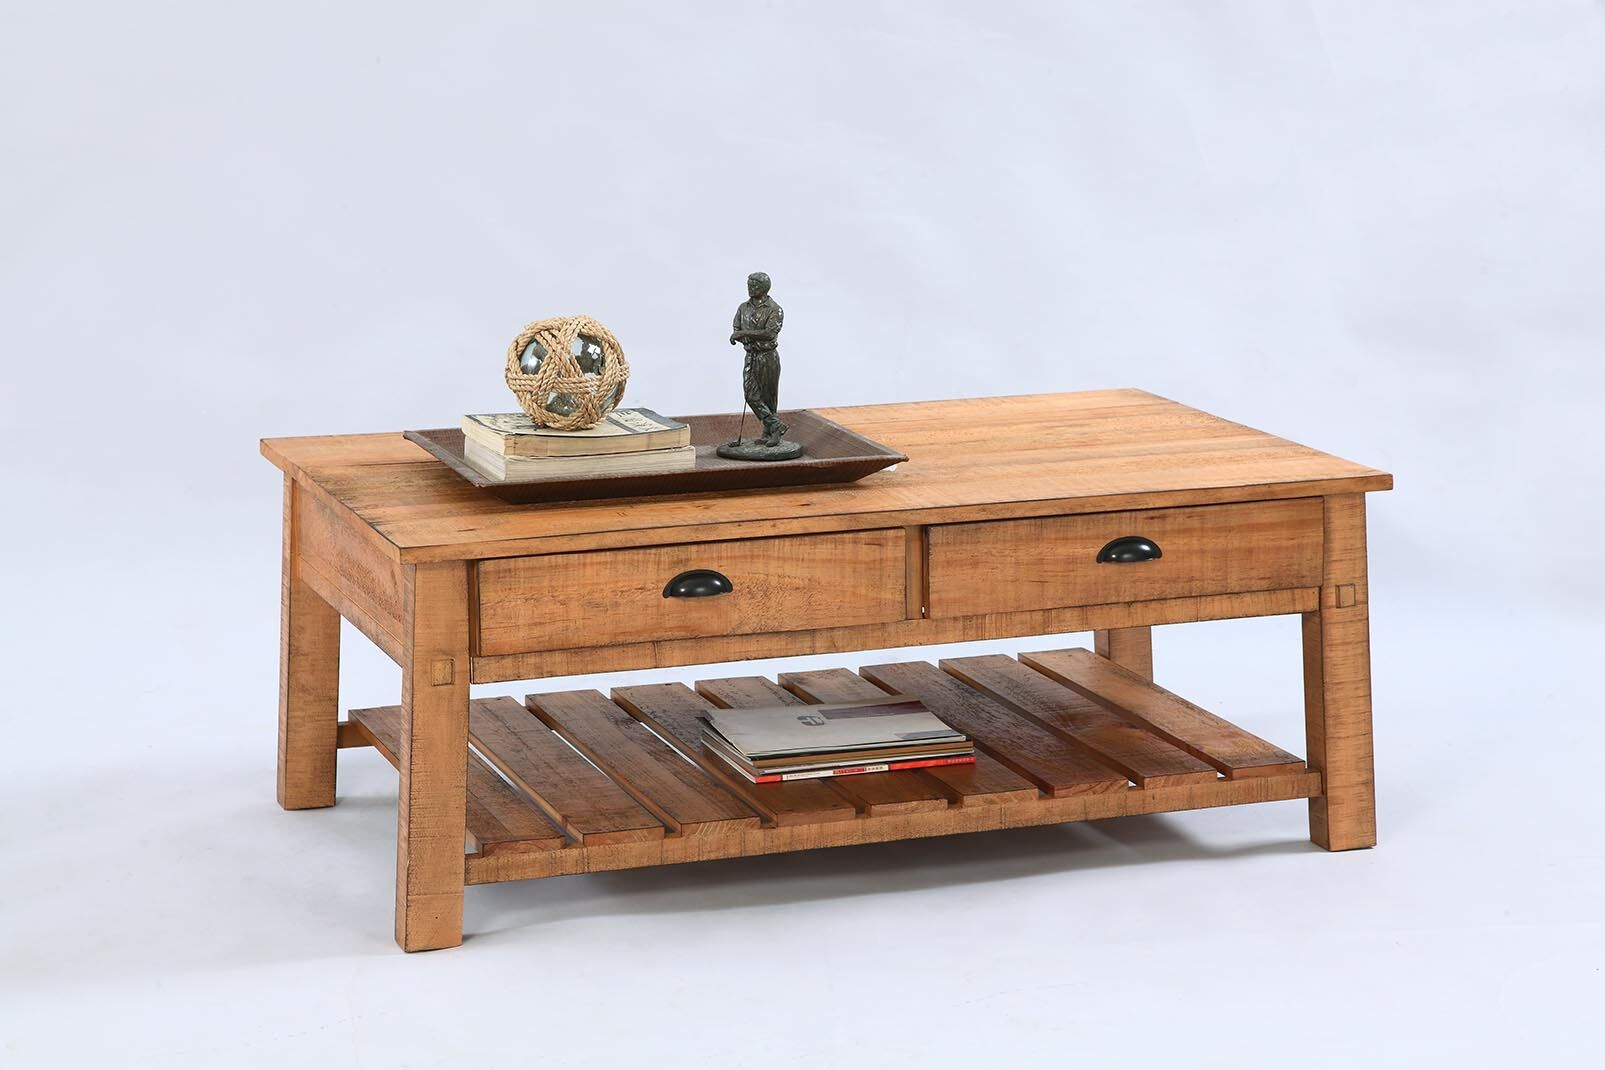 Midwest Plutarch Coffee Table